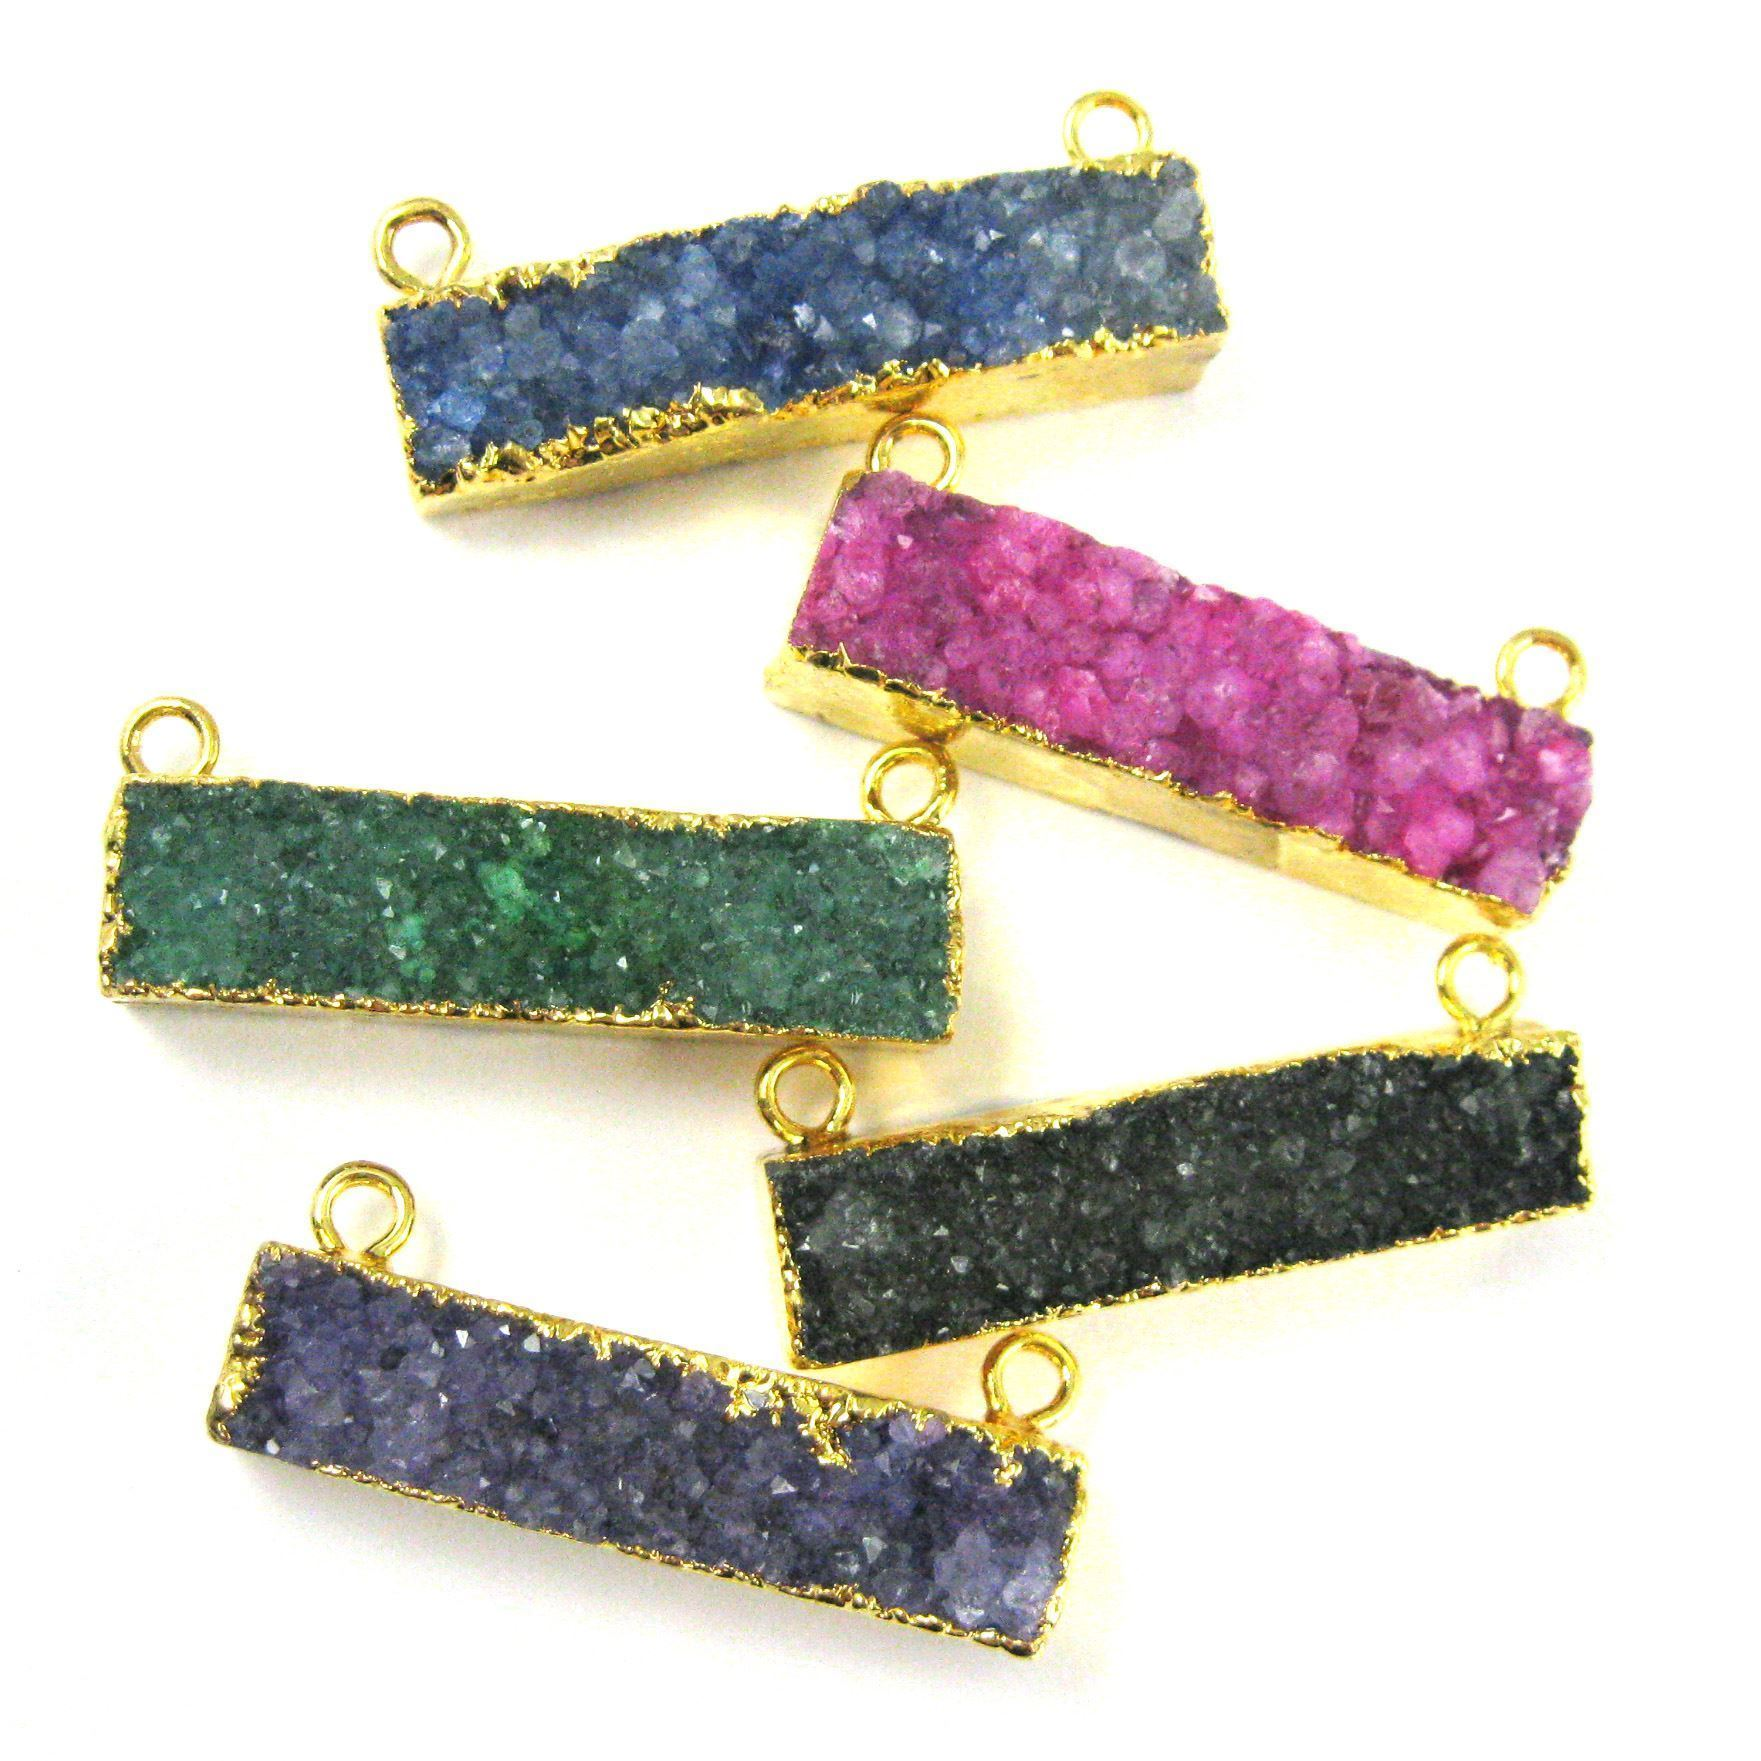 Druzy Gemstone Bar Pendant, Natural Rainbow Agate Gold Dipped Connector Pendant, Top Rings - Purple Agate -35mm